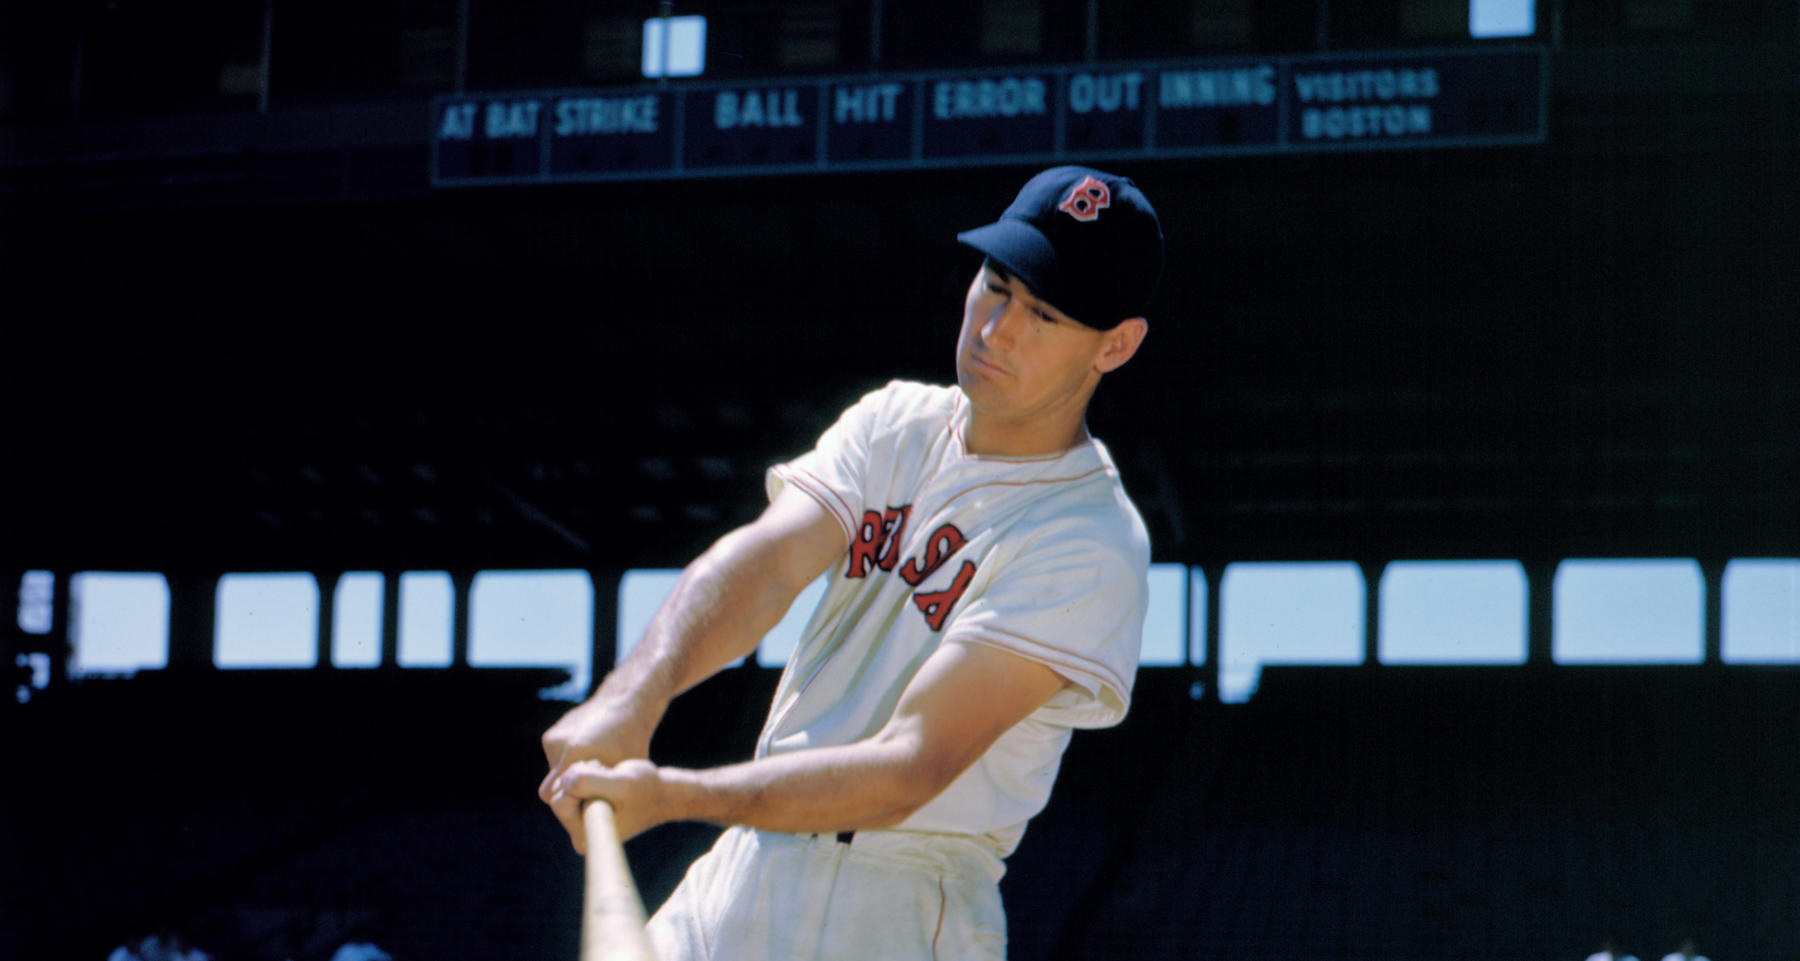 Detail of Ted Williams from BL-68-57 (National Baseball Hall of Fame Library)